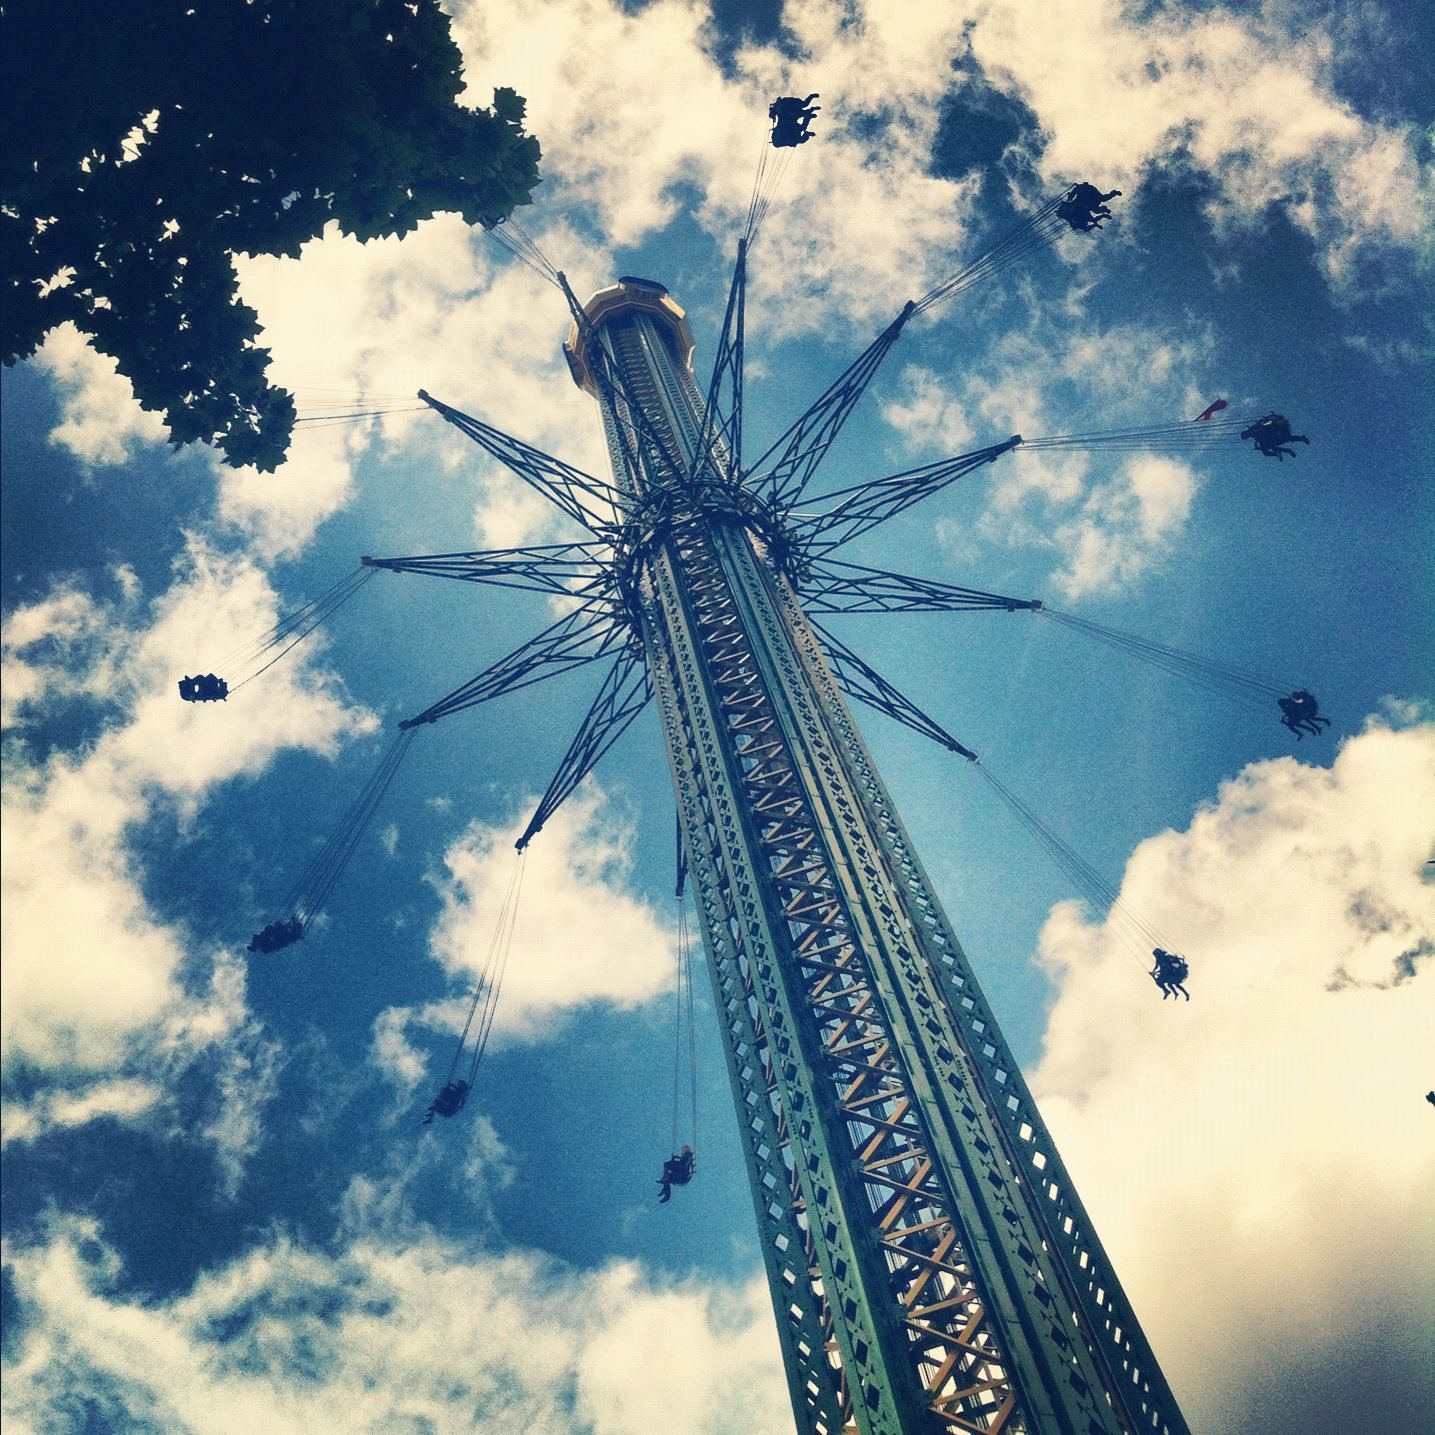 Vienna, Austria, expat, travel, Prater Tower, swing